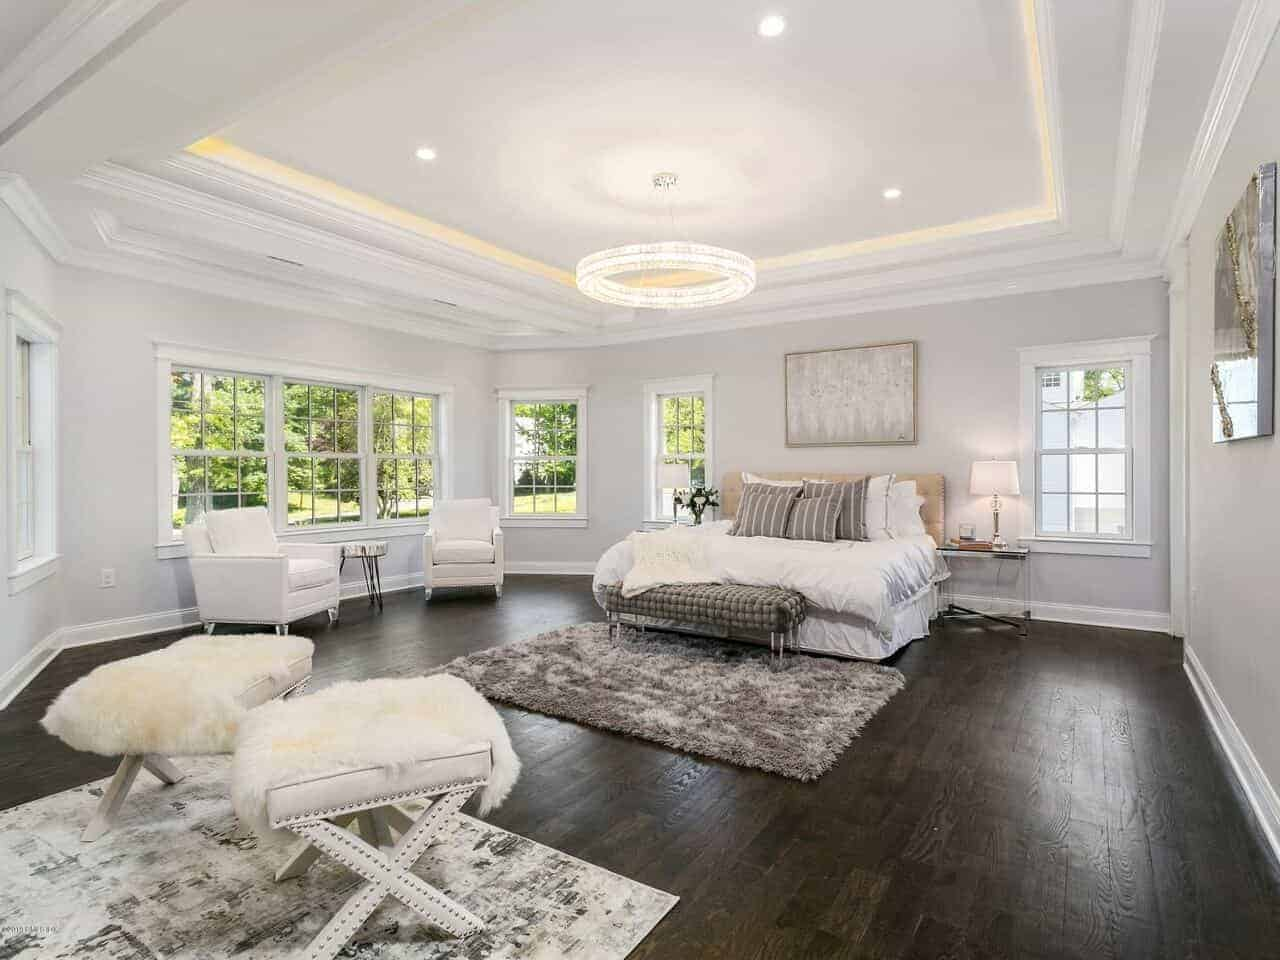 This primary bedroom has a brilliant modern circular light hanging from the white tray ceiling that contrasts the dark hardwood flooring that makes the white bed stand out with its beige cushioned headboard.